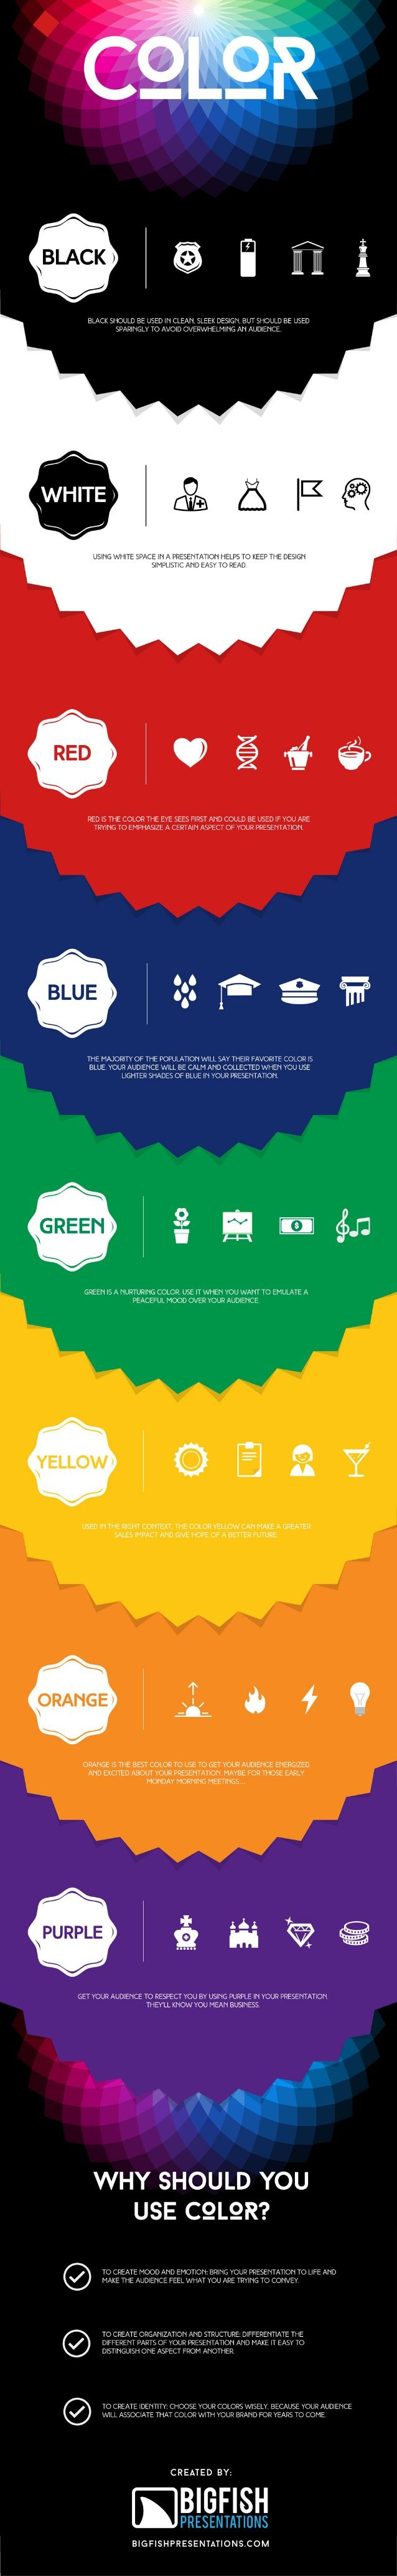 The Psychology of Color in Presentations (Infographic) by Big Fish Presentations via slideshare